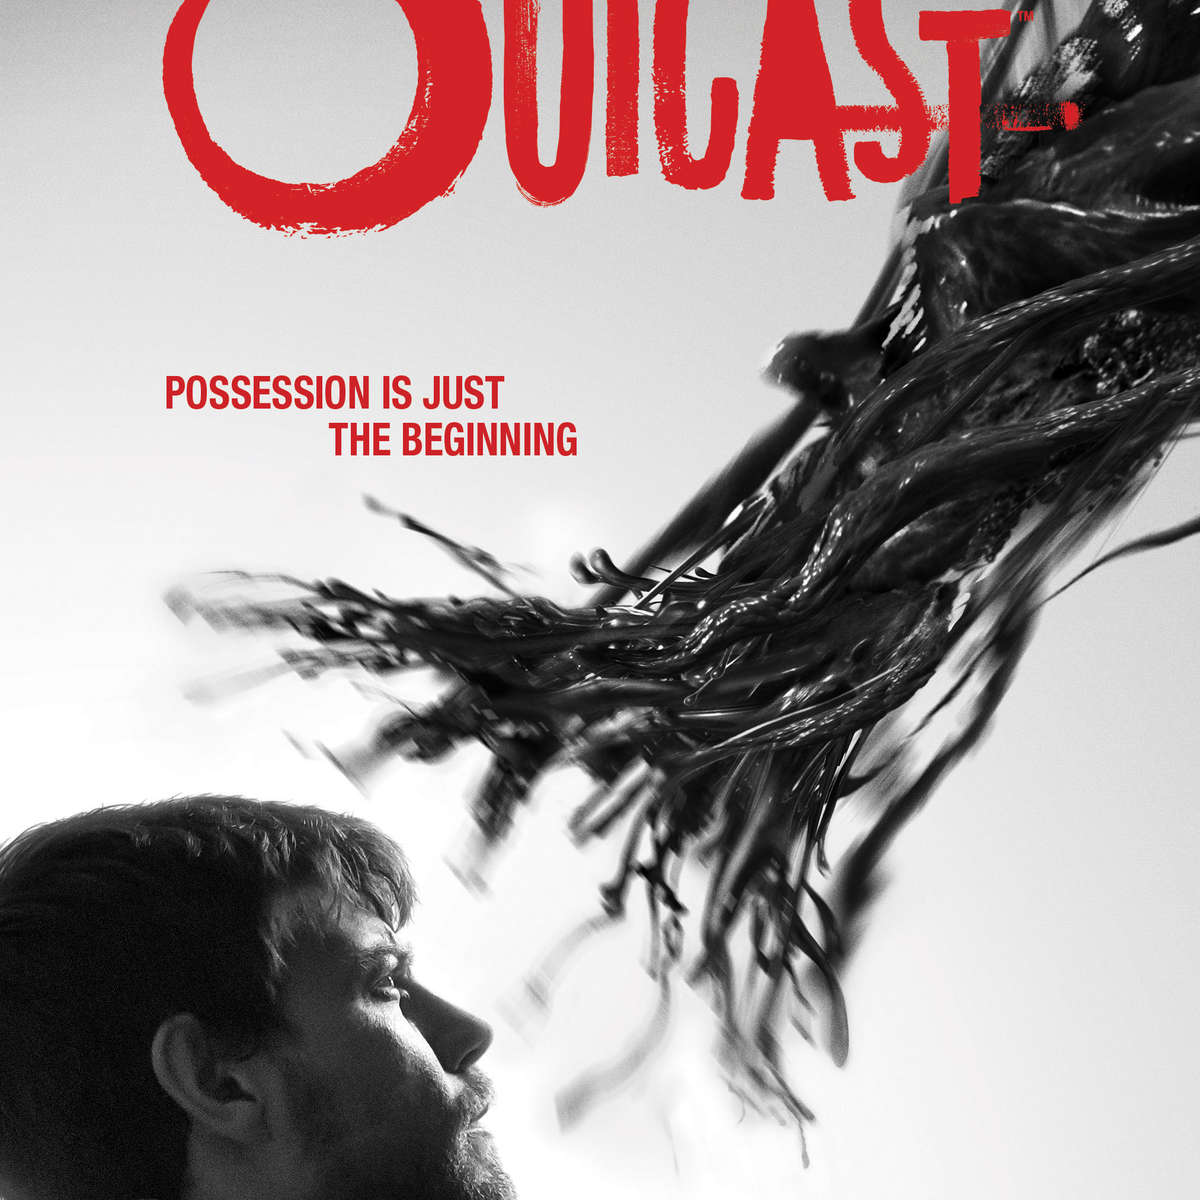 outcast-key-art-final_0.jpg